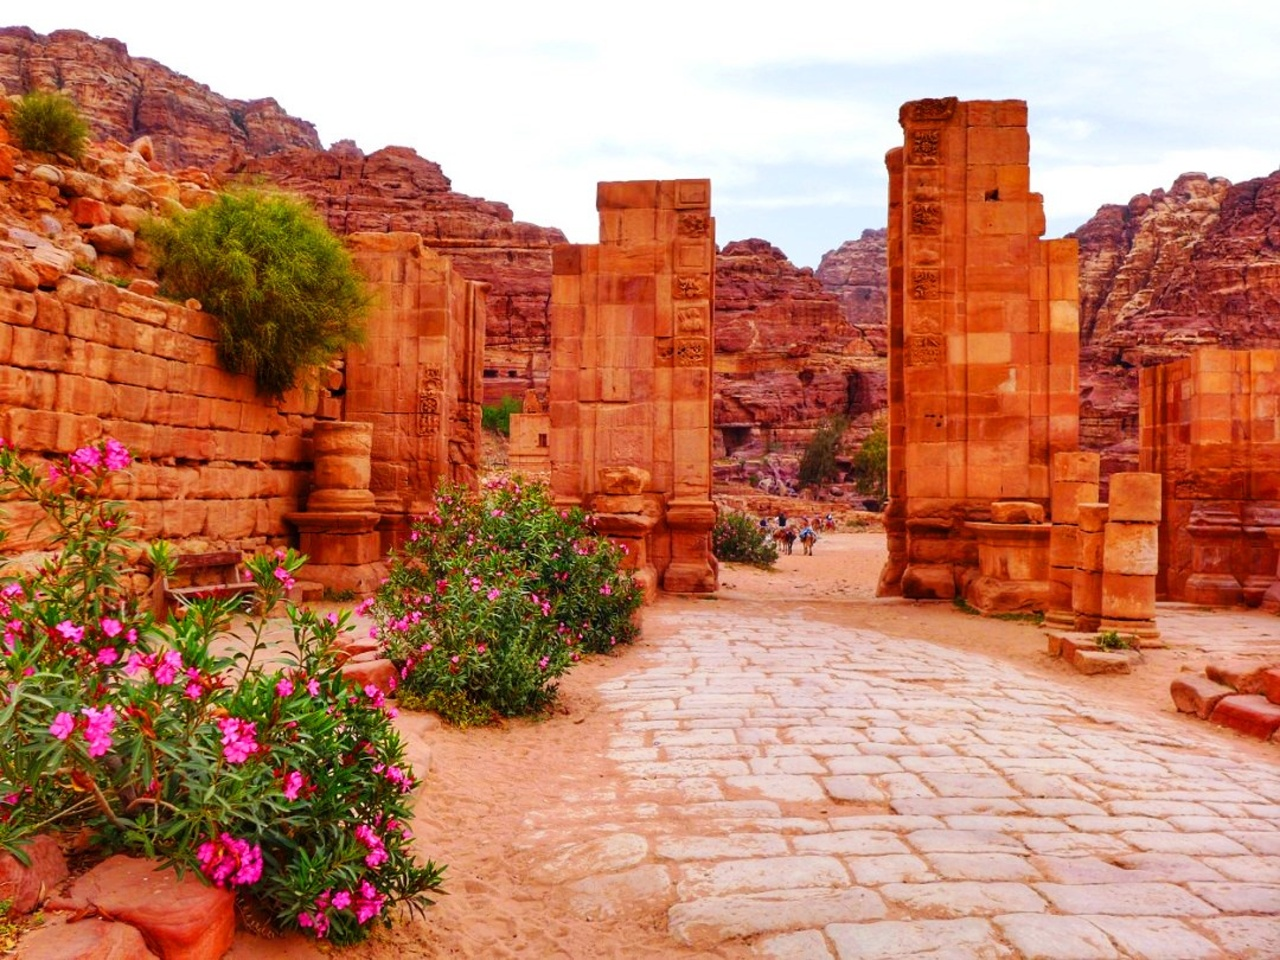 Petra colonnaded street